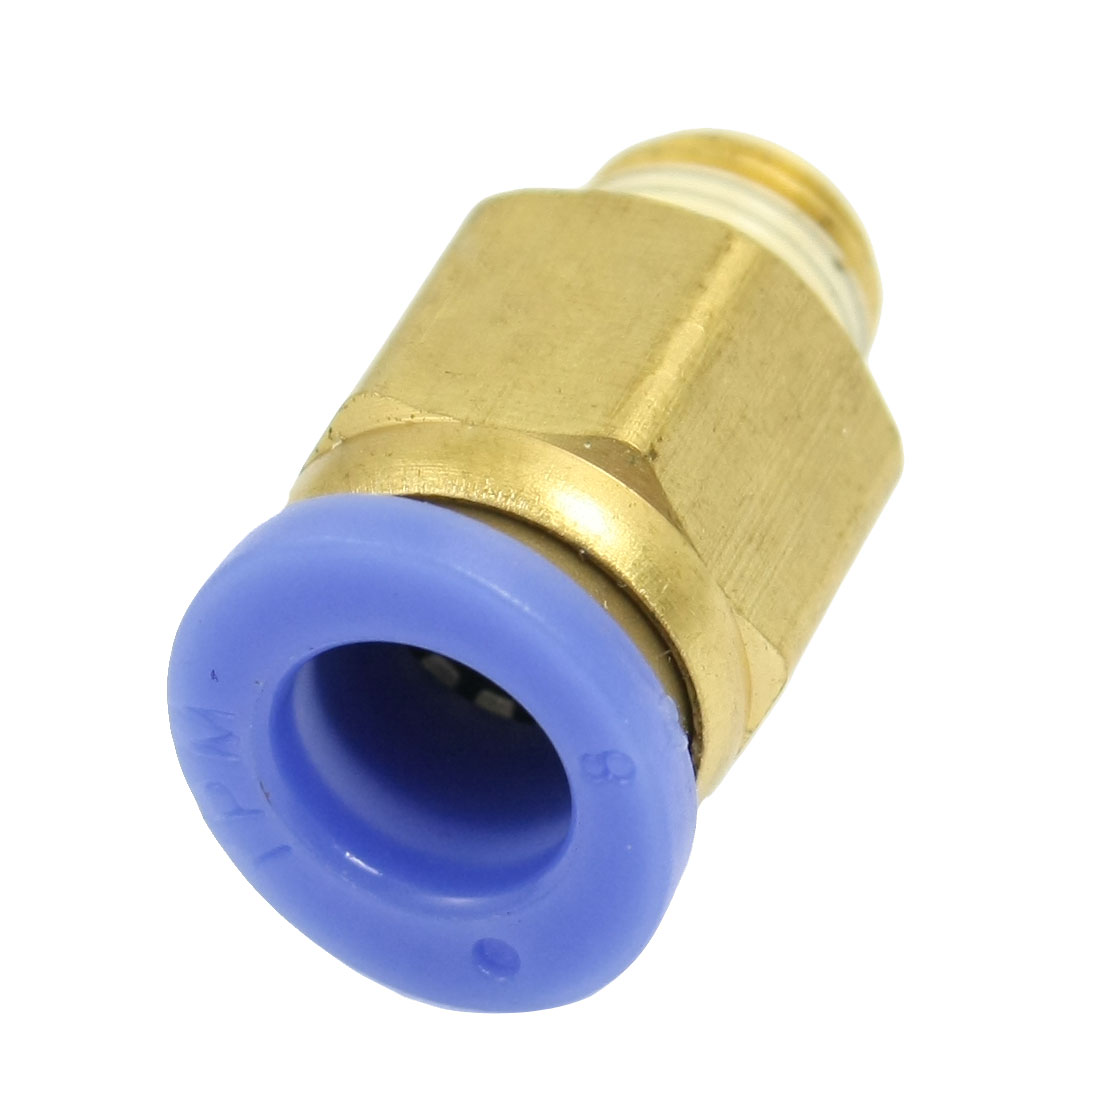 9mm Male Thread 8mm Push in Joint Air Pneumatic Connector Quick Fitting